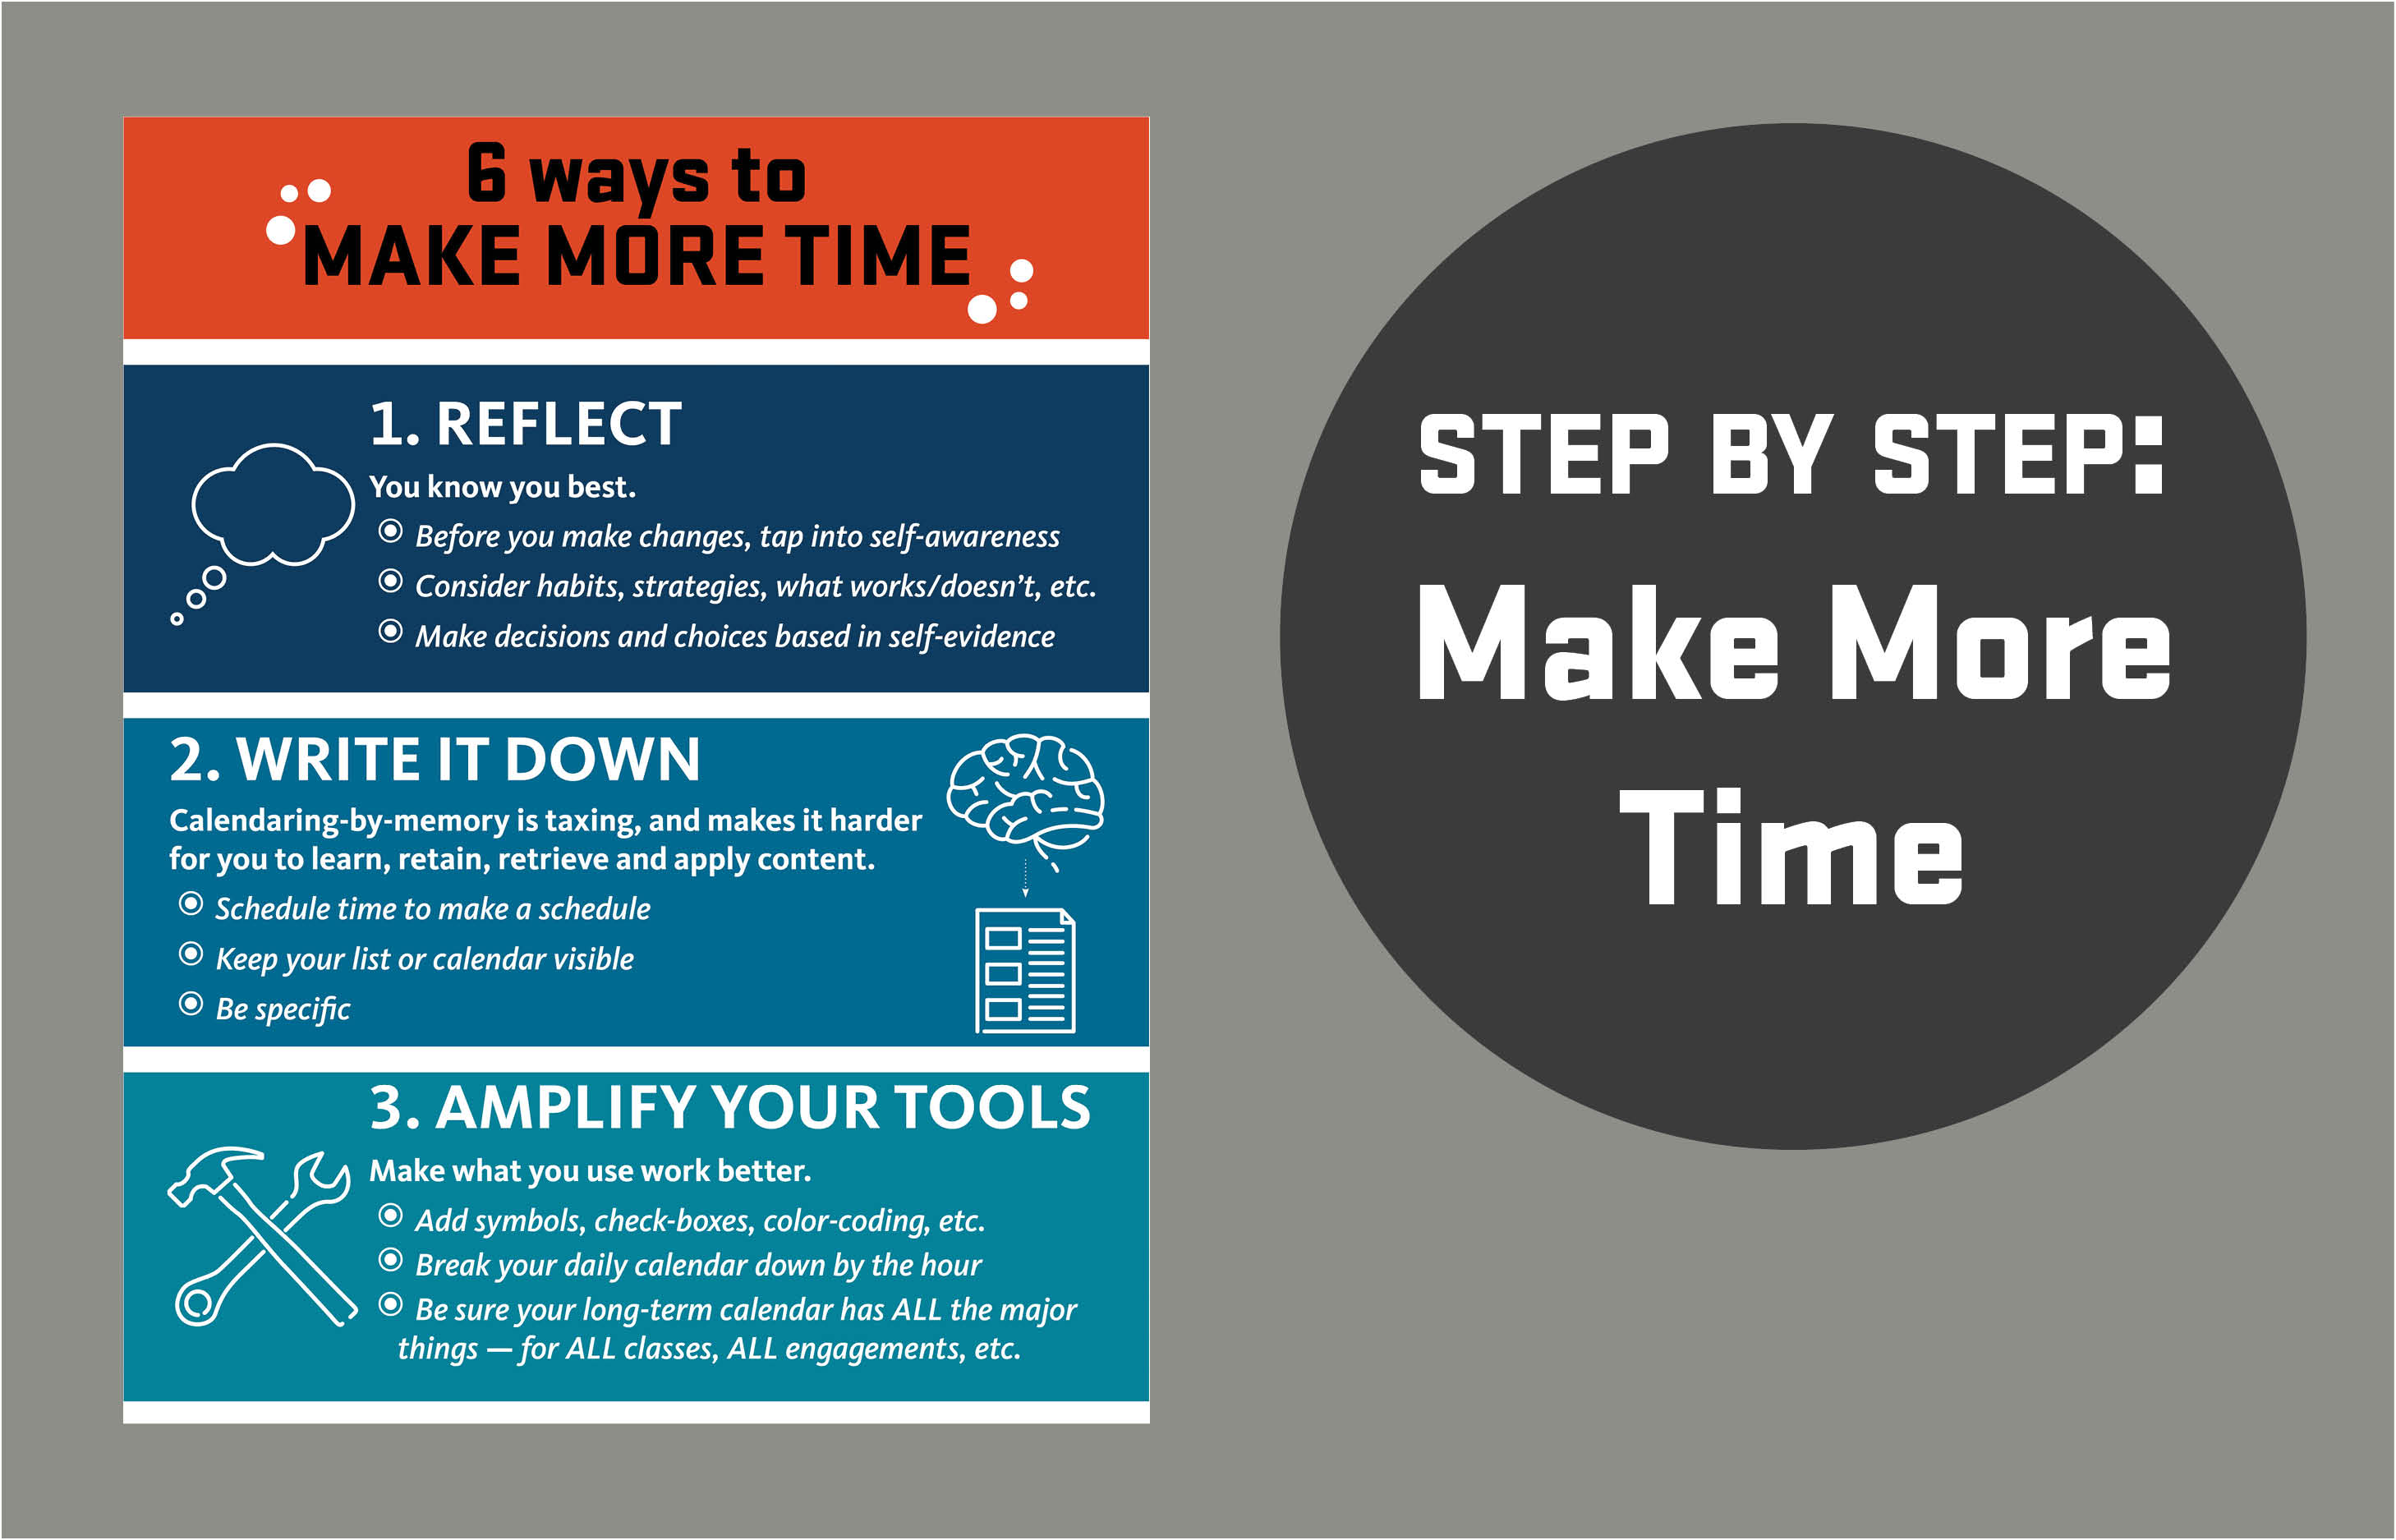 6 ways to make more time